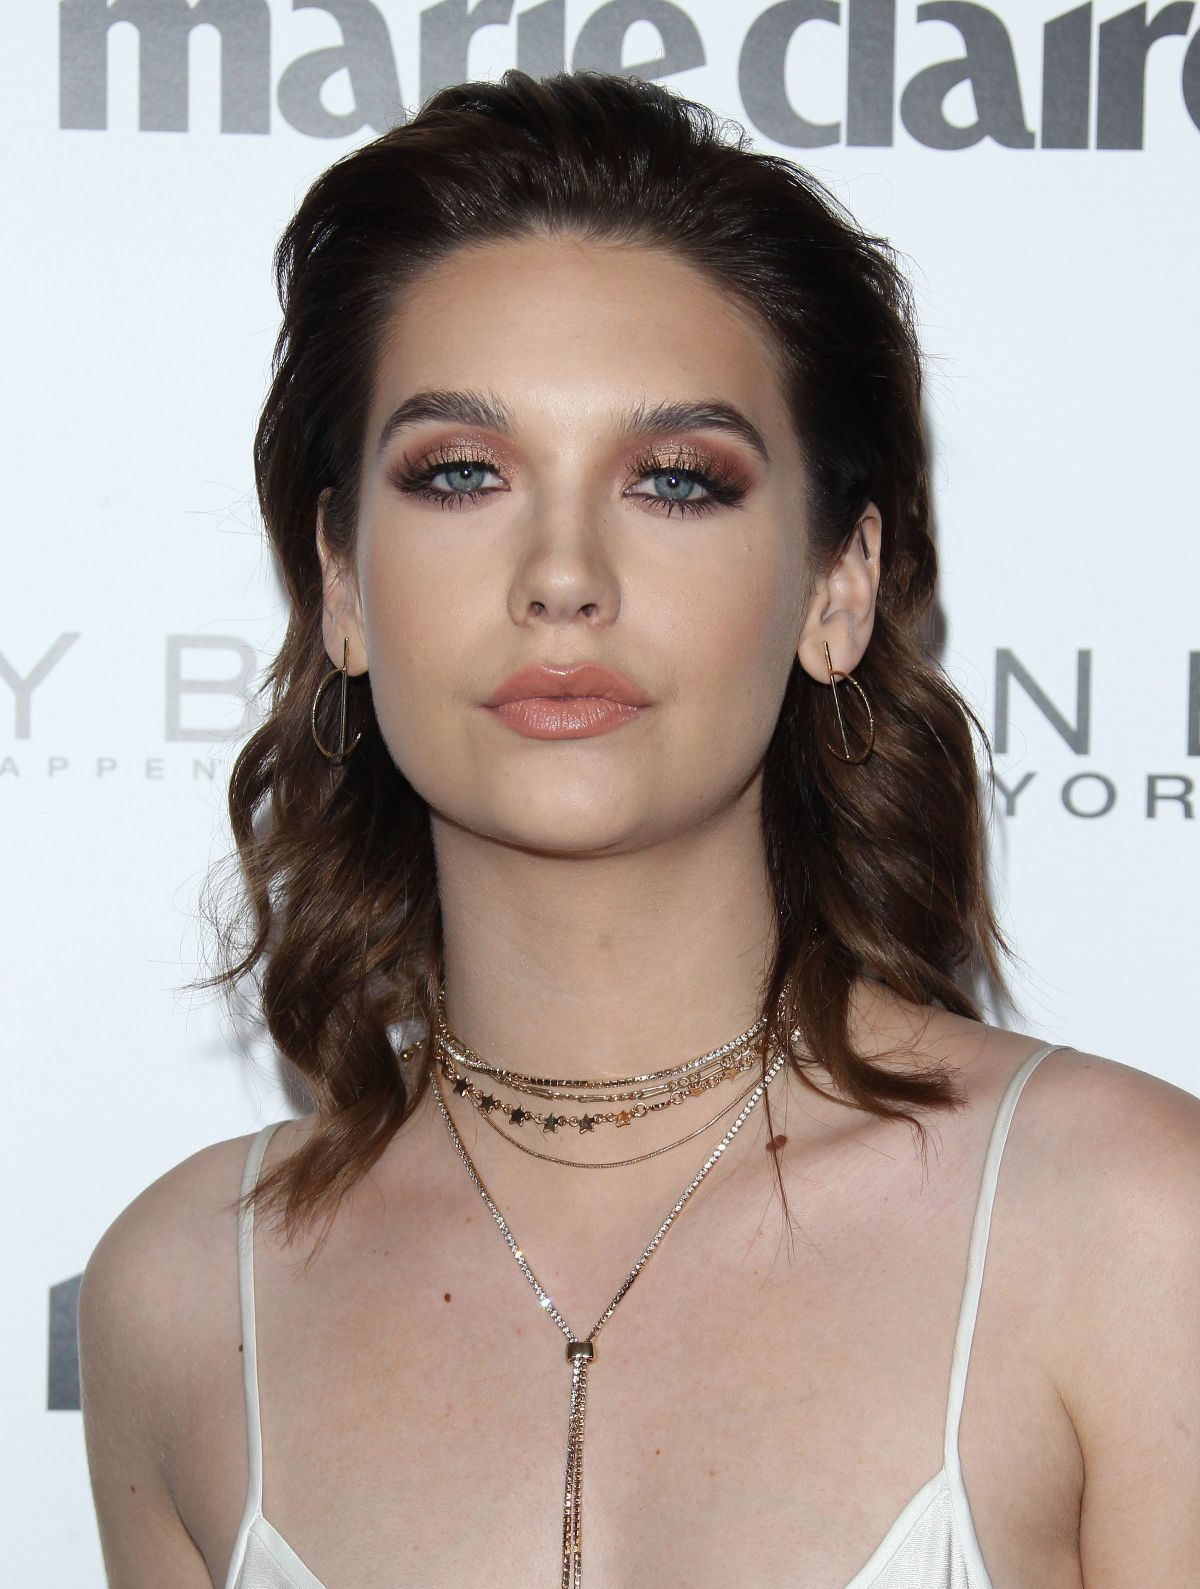 AMANDA STEELE at Marie Claire Celebrates Fresh Faces in Los Angeles 04/21/2017